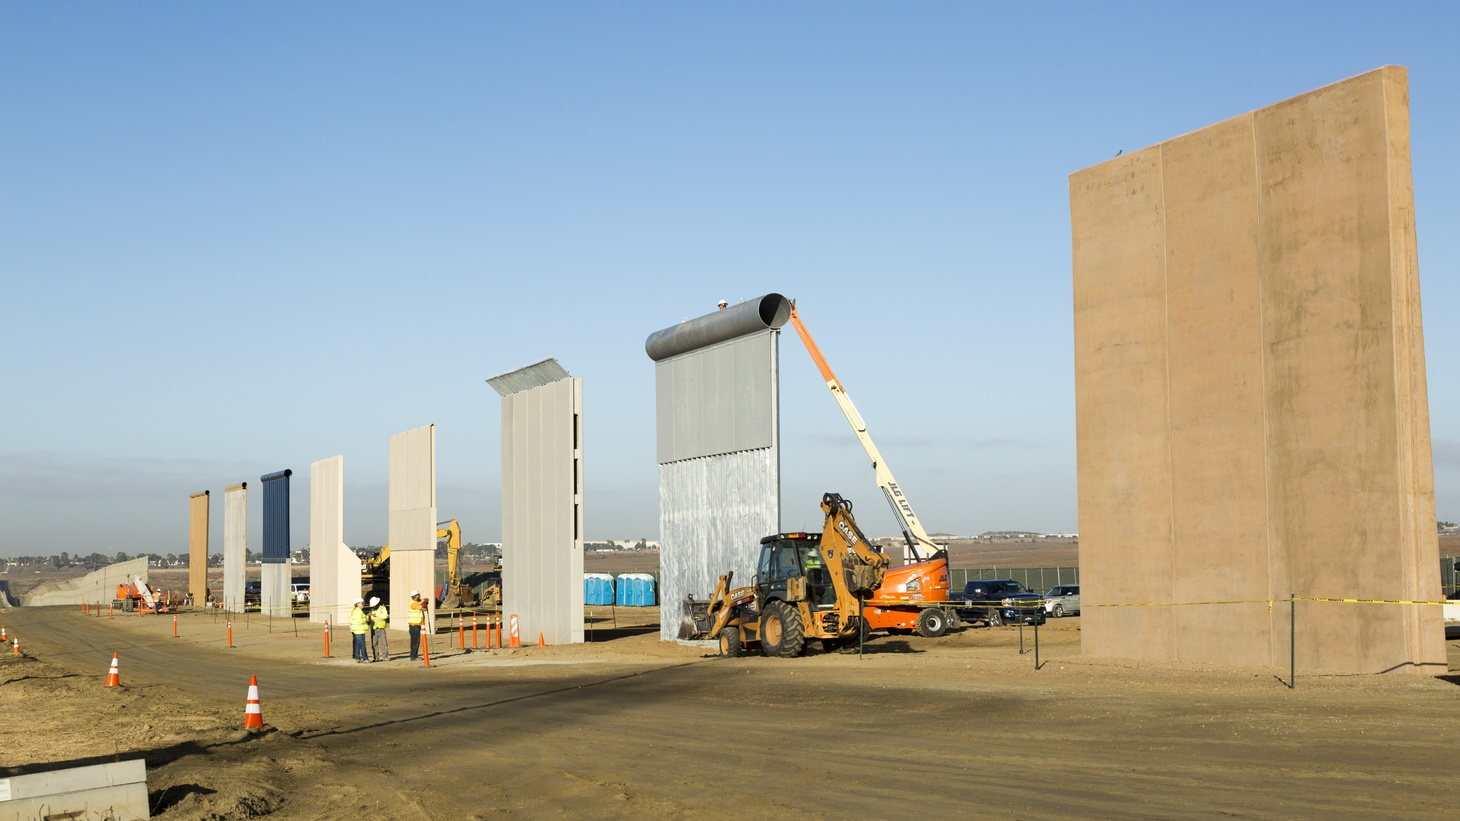 Ground views of different Border Wall Prototypes as they take shape during the Wall Prototype Construction Project near the Otay Mesa Port of Entry.